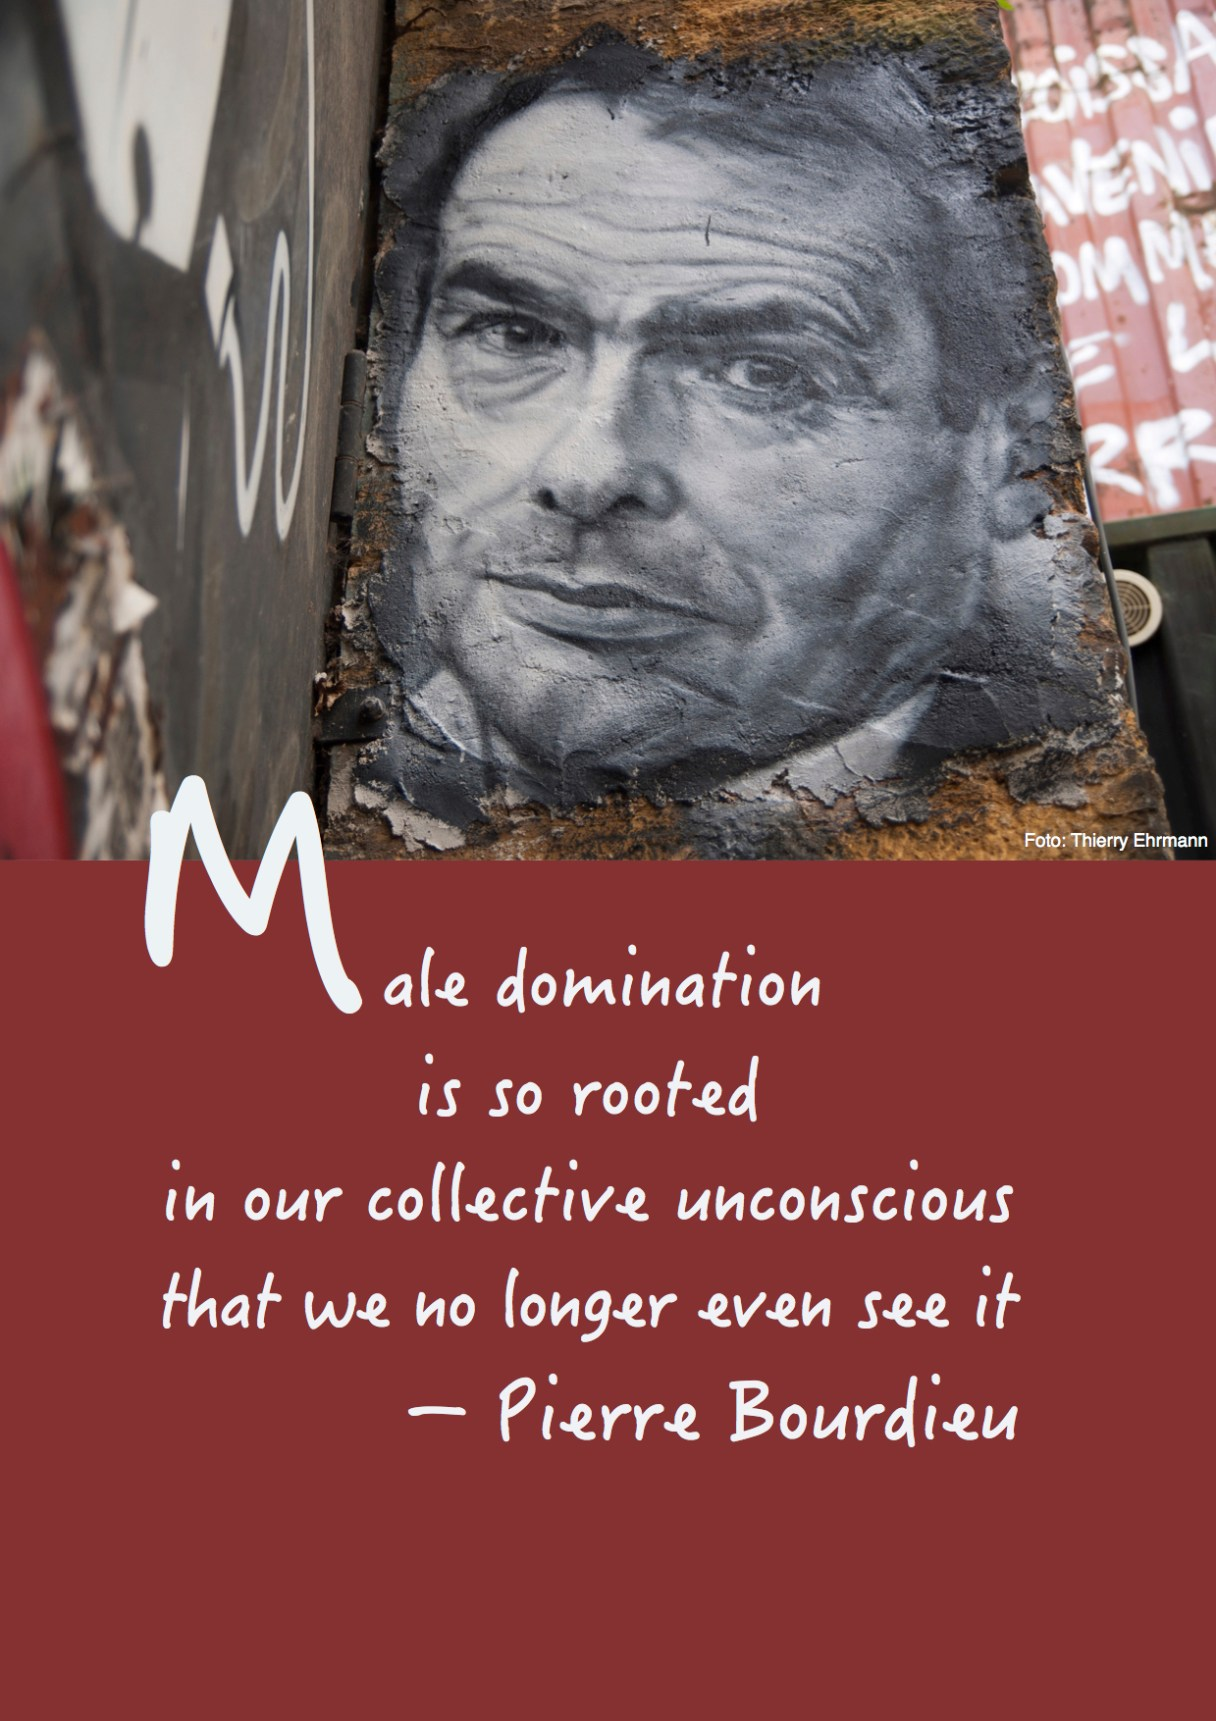 "Dagens citat – Pierre Bourdieu ""Male domination is so rooted in our collective unconscious that we no longer even see it"". Originalfoto: Thierry Ehrmann (flickr.com). Citatillustration: Maria Busch"